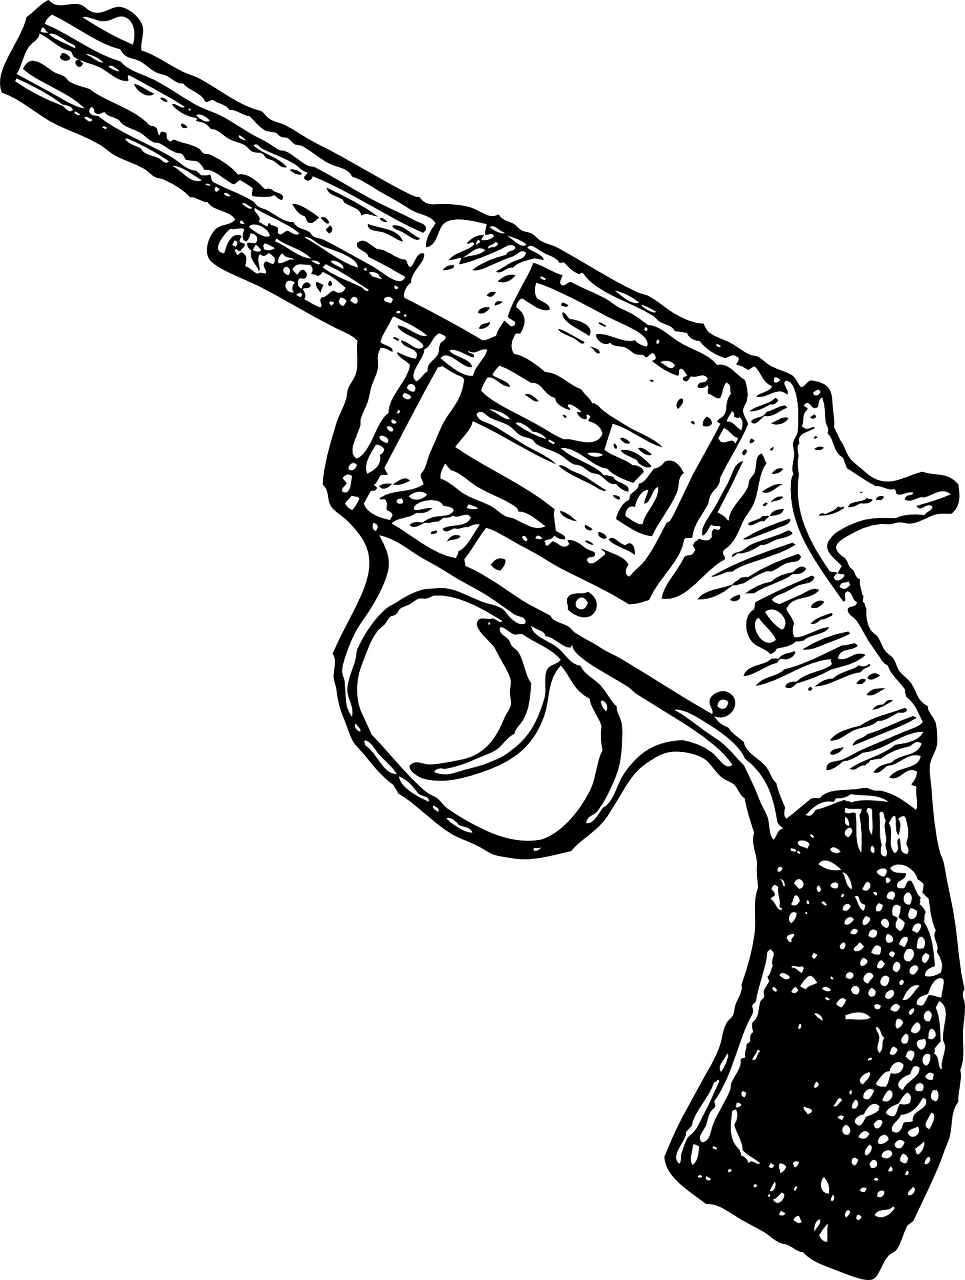 Latest drawing gun. Free image on pixabay